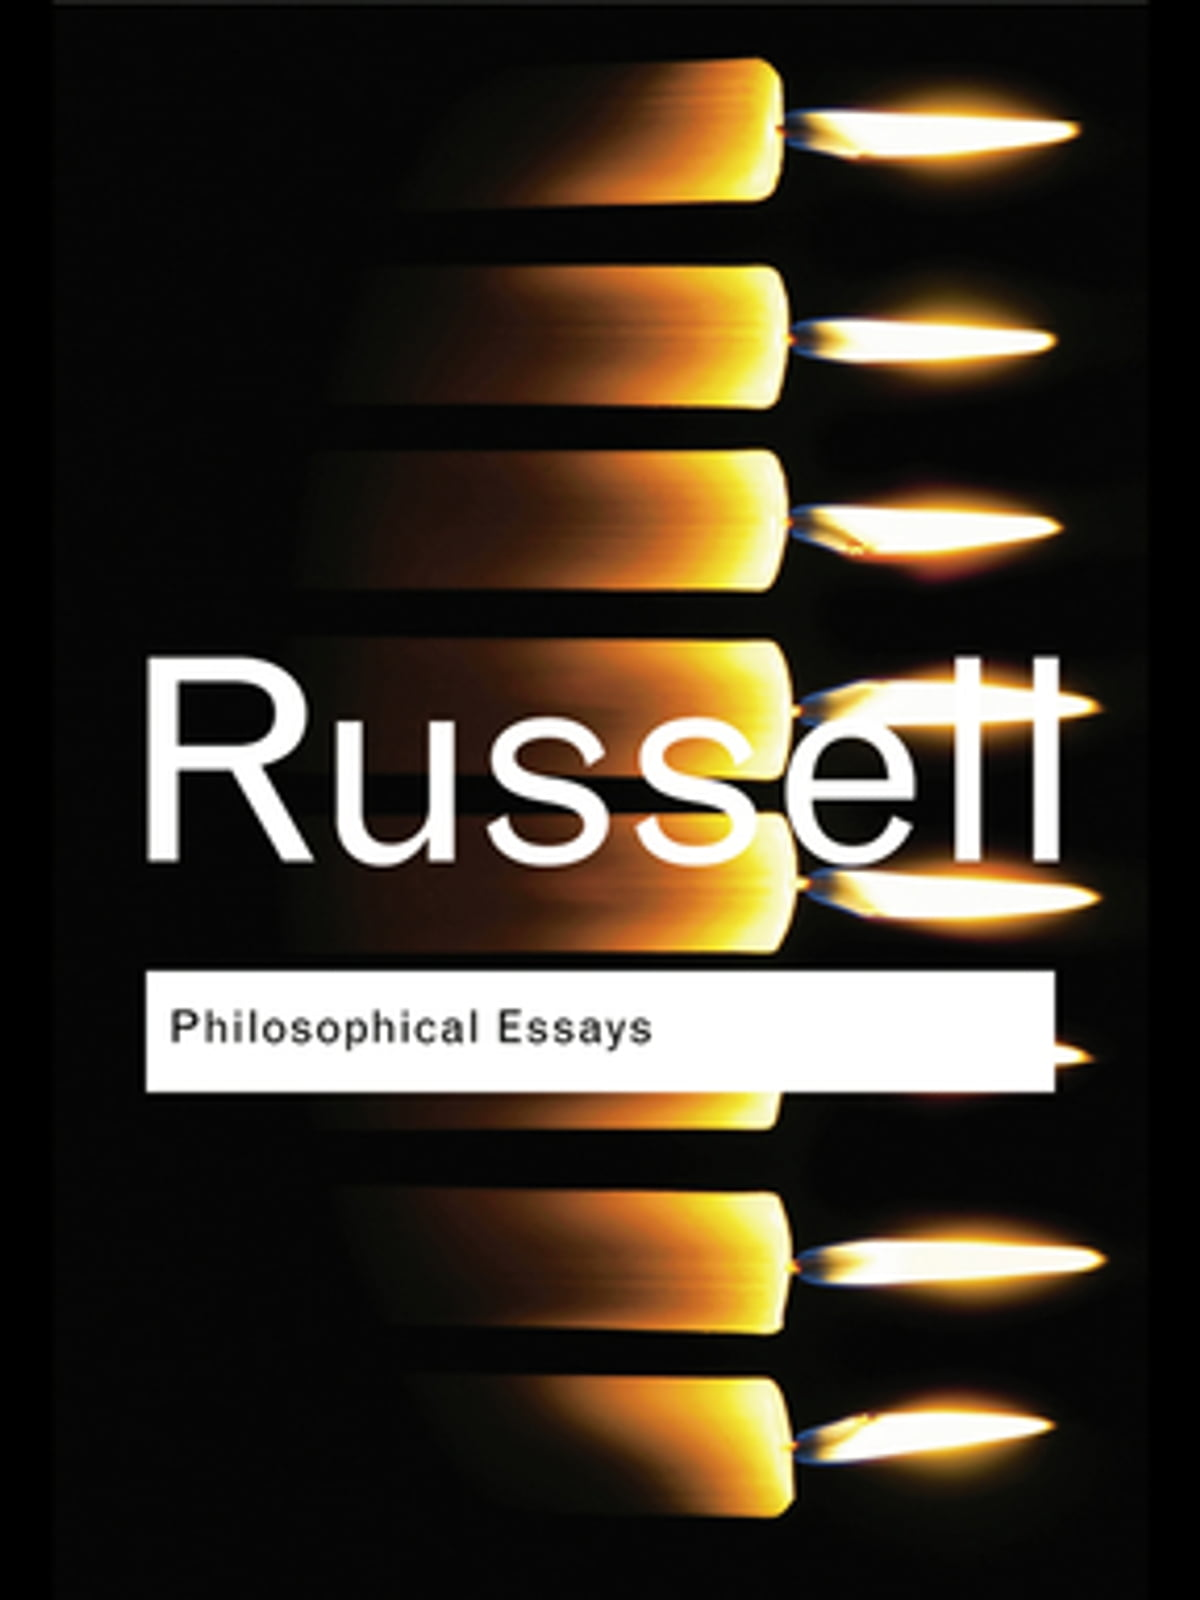 Science Assignment Help Philosophical Essays Ebook By Bertrand Russell    Rakuten  Kobo Examples Of Thesis Statements For Argumentative Essays also English Essay Topics Philosophical Essays Ebook By Bertrand Russell    Pay Someone To Write My Book Report